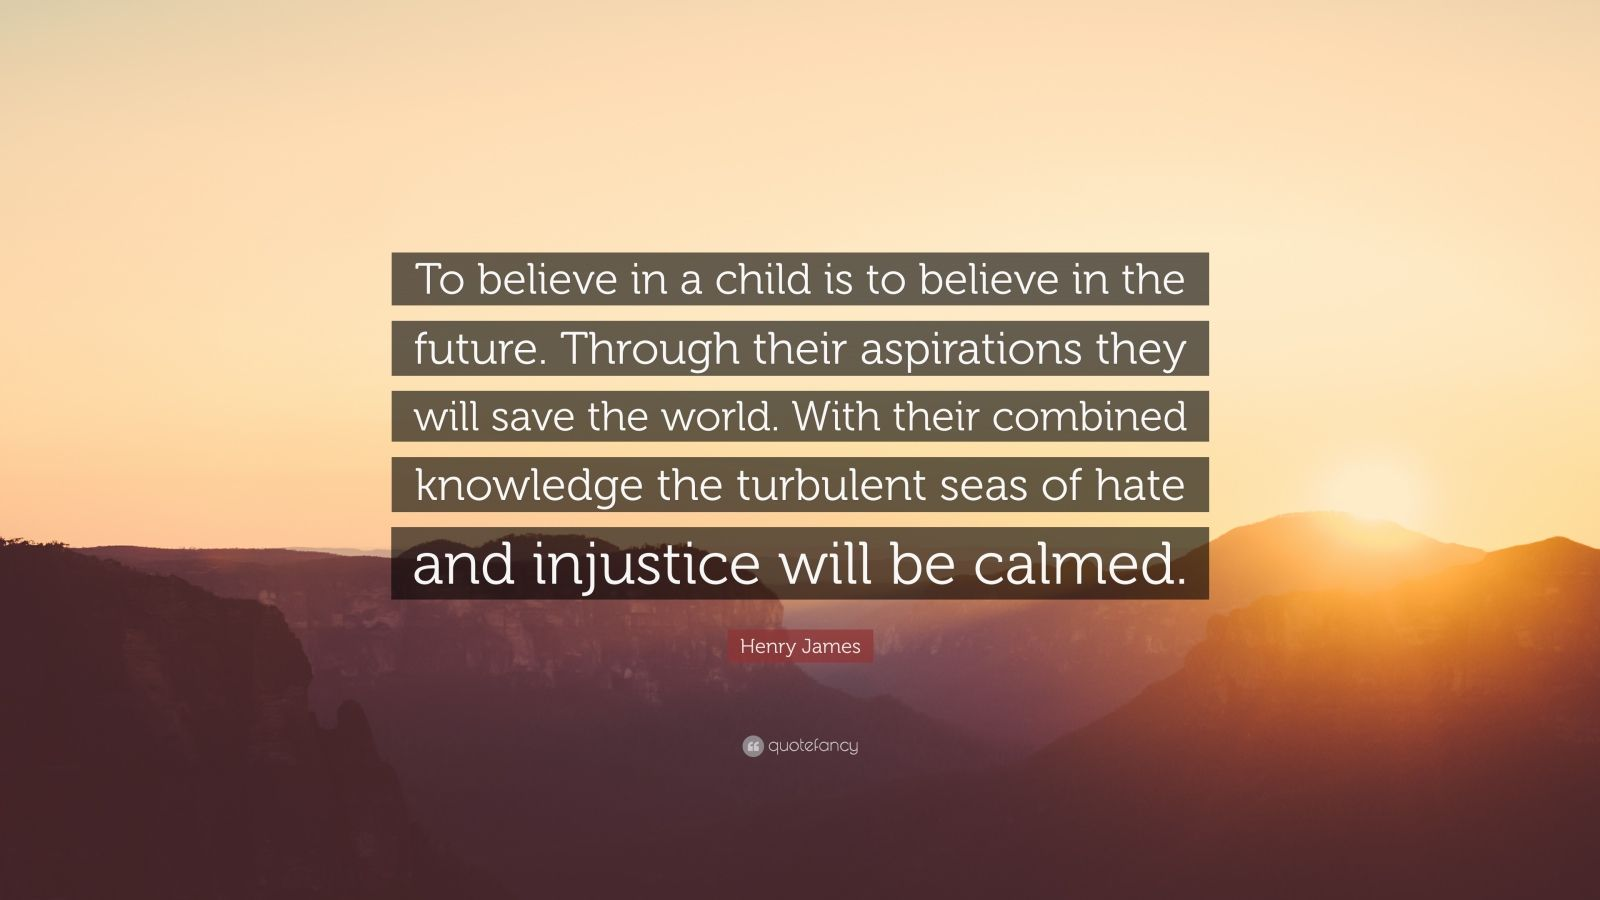 henry james quotes 100 quotefancy henry james quote to believe in a child is to believe in the future